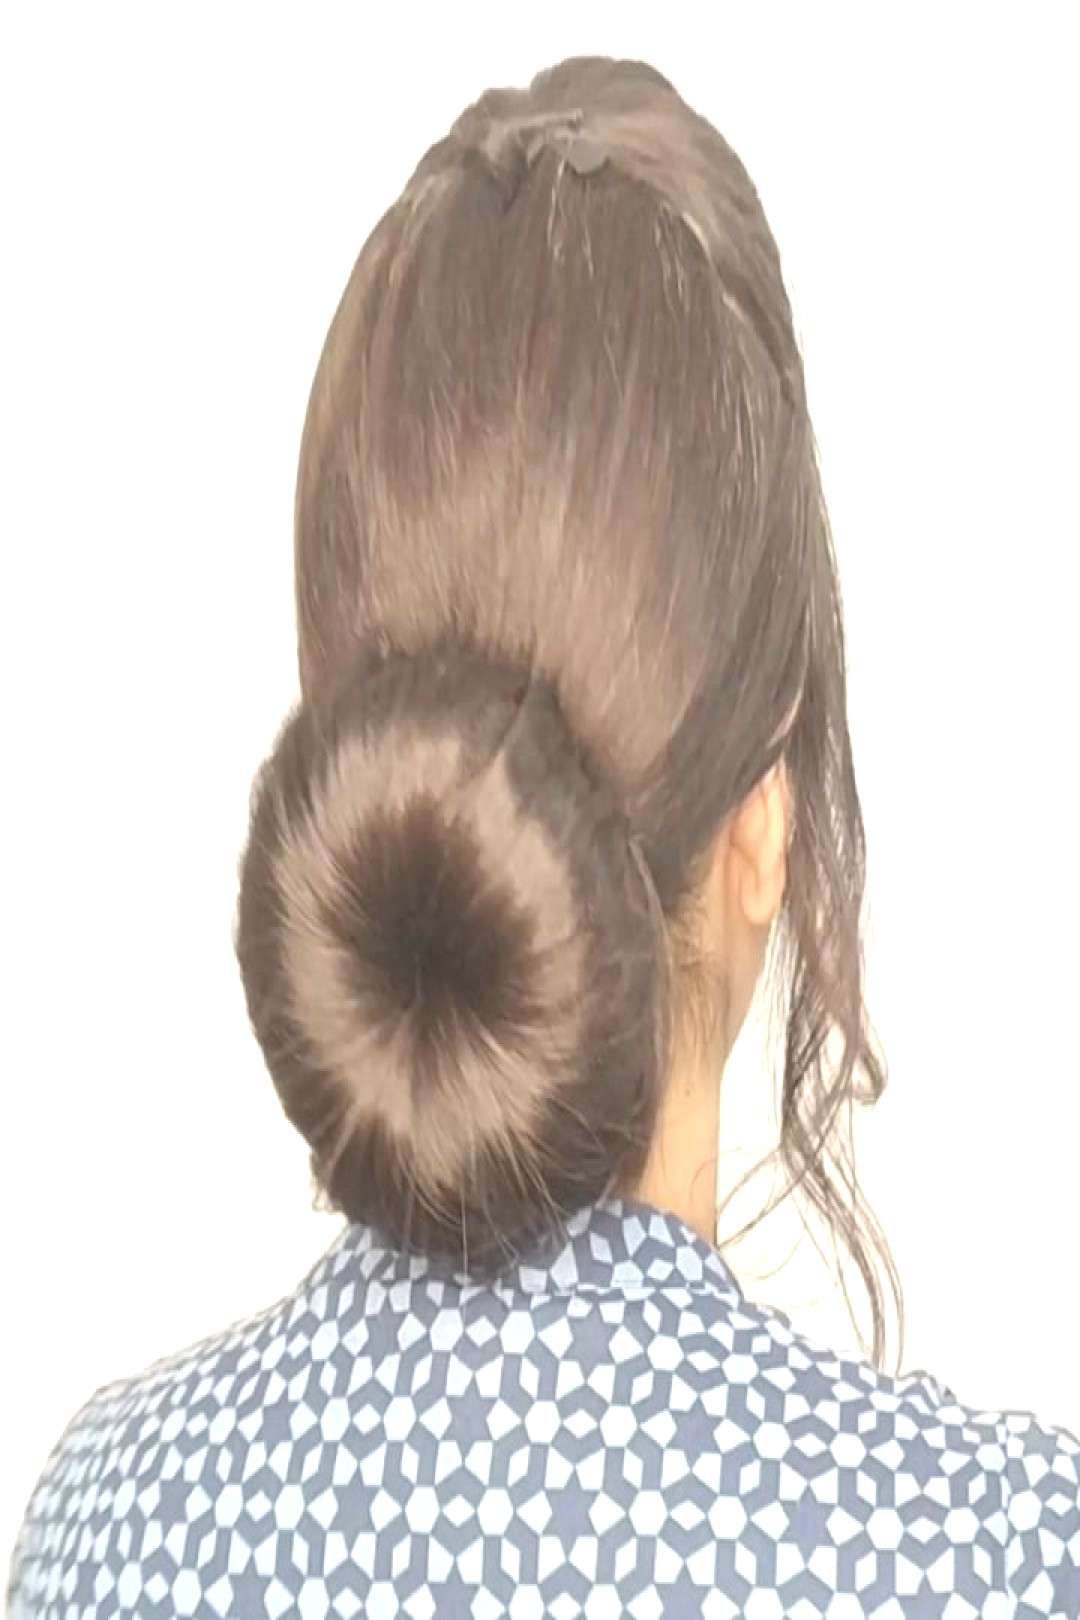 Easyhairstyles Hairstyle Tutorial Check Video Easy Juda Thin Hair Full For On Easy Juda Hairst In 2020 Easy Hairstyles Hairstyles For Thin Hair Hair Styles